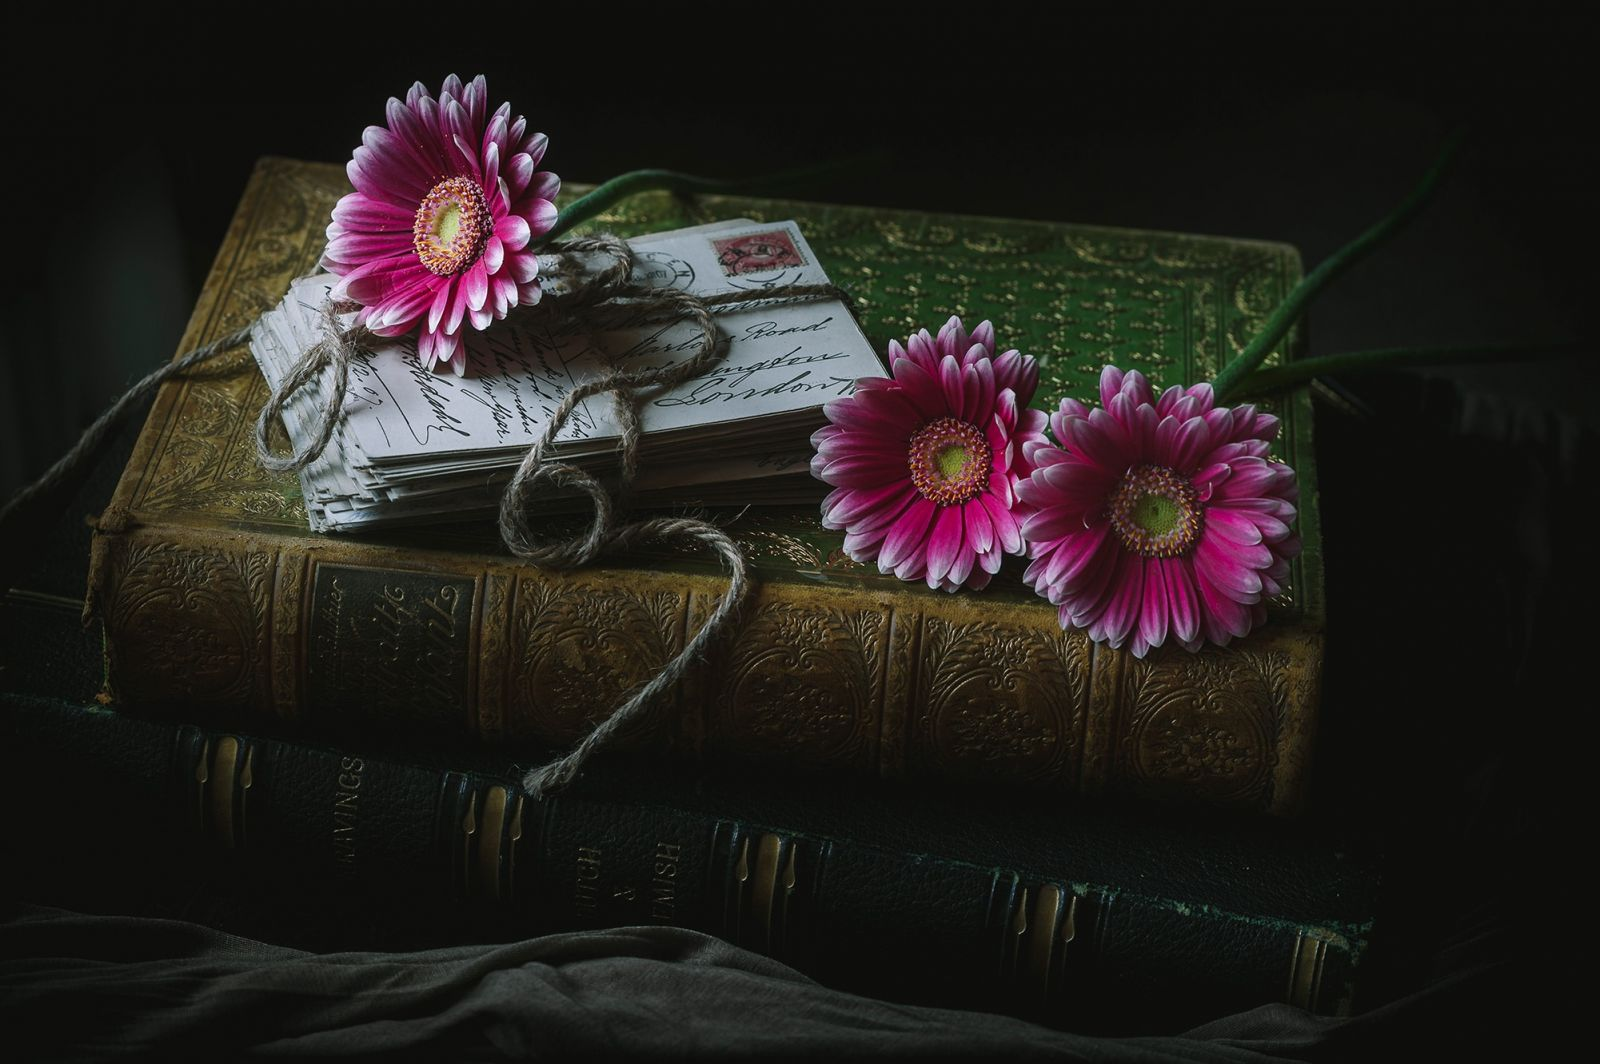 Pink flowers on book with letters tied with string